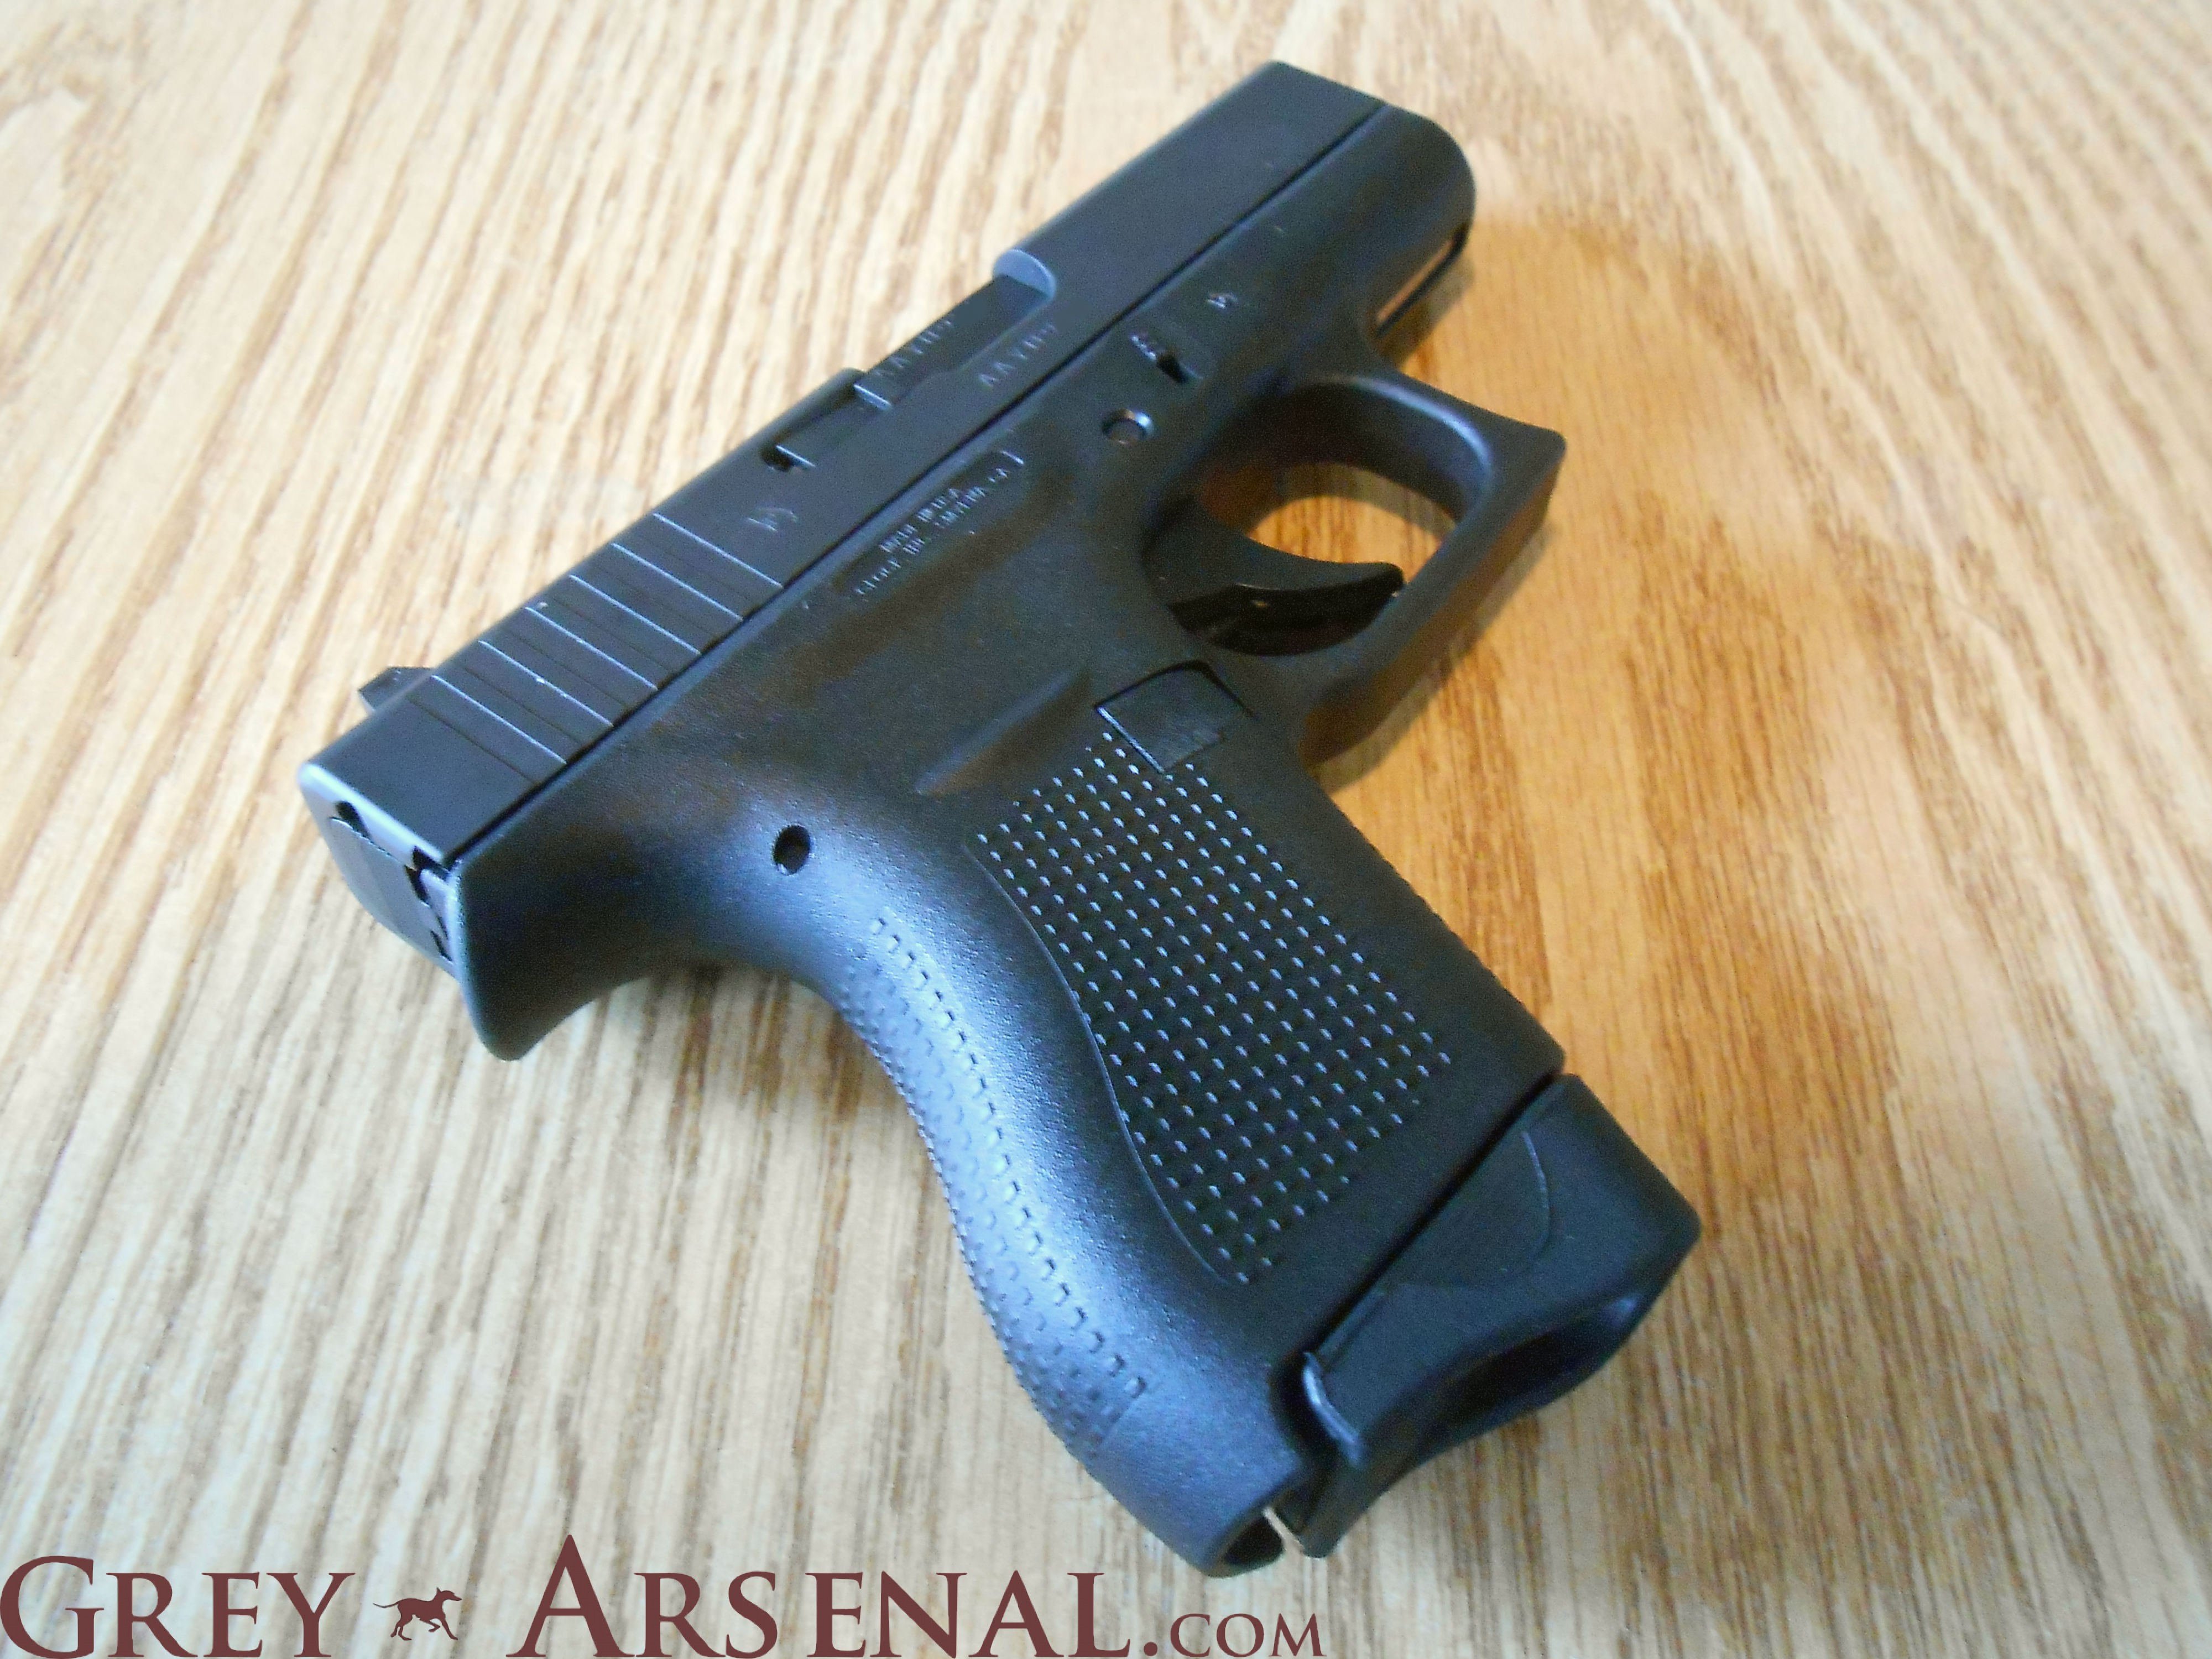 Grey Arsenal Firearms Tear Down Guides Reviews And More